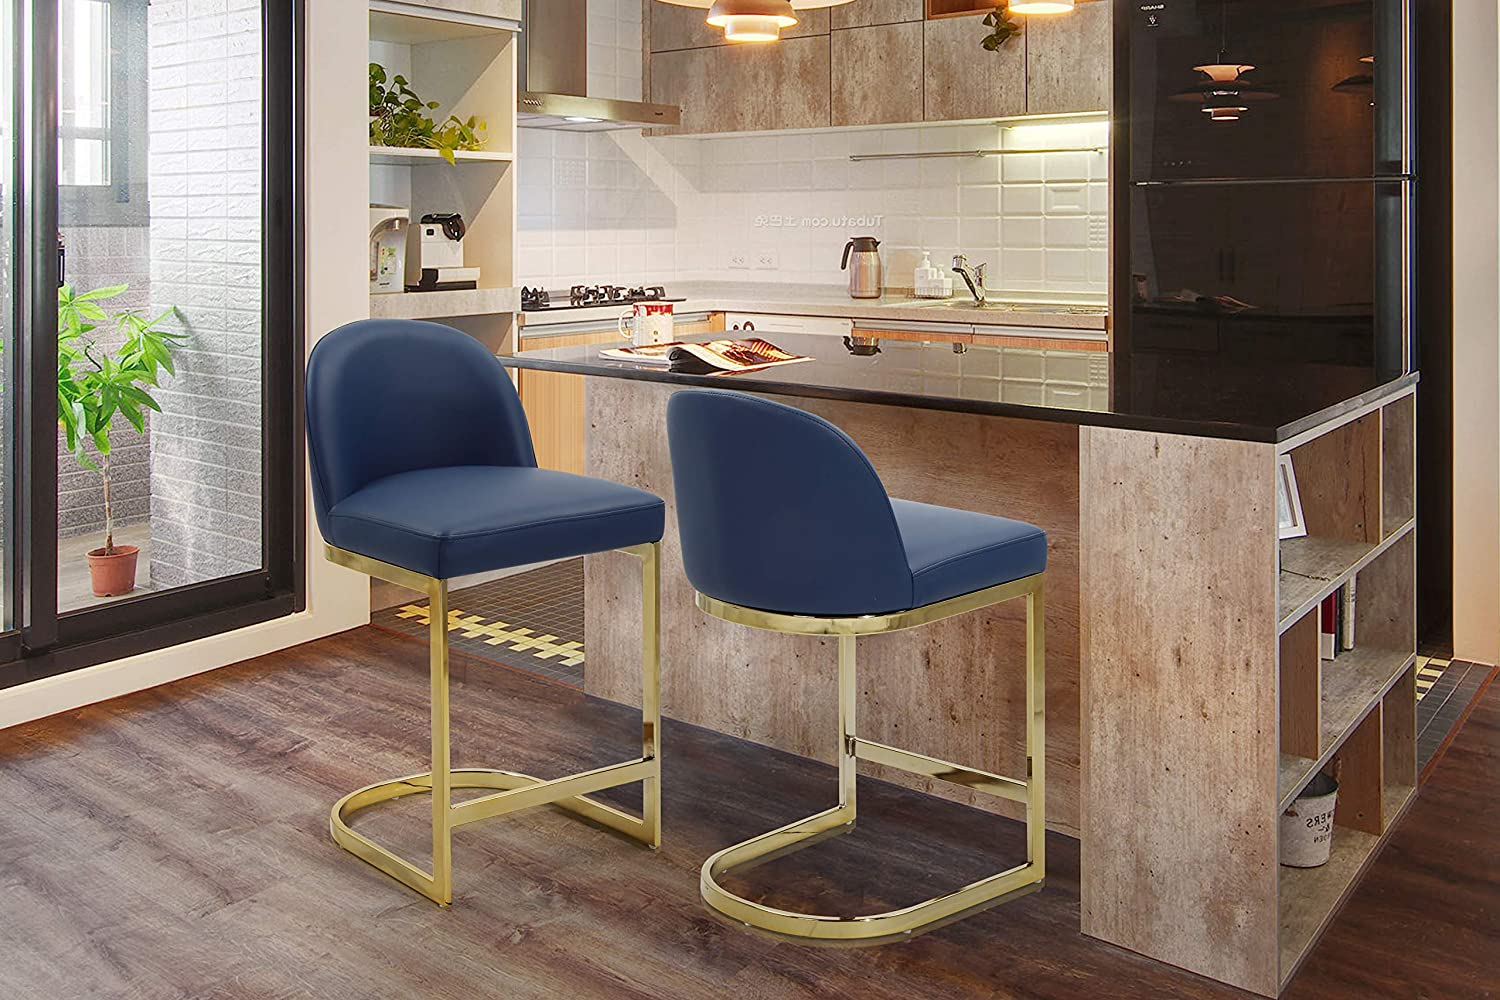 Inventory cleanup selling sale Iconic Home Xander Counter Stool Upholstered Chair Ar Spring new work Leather PU